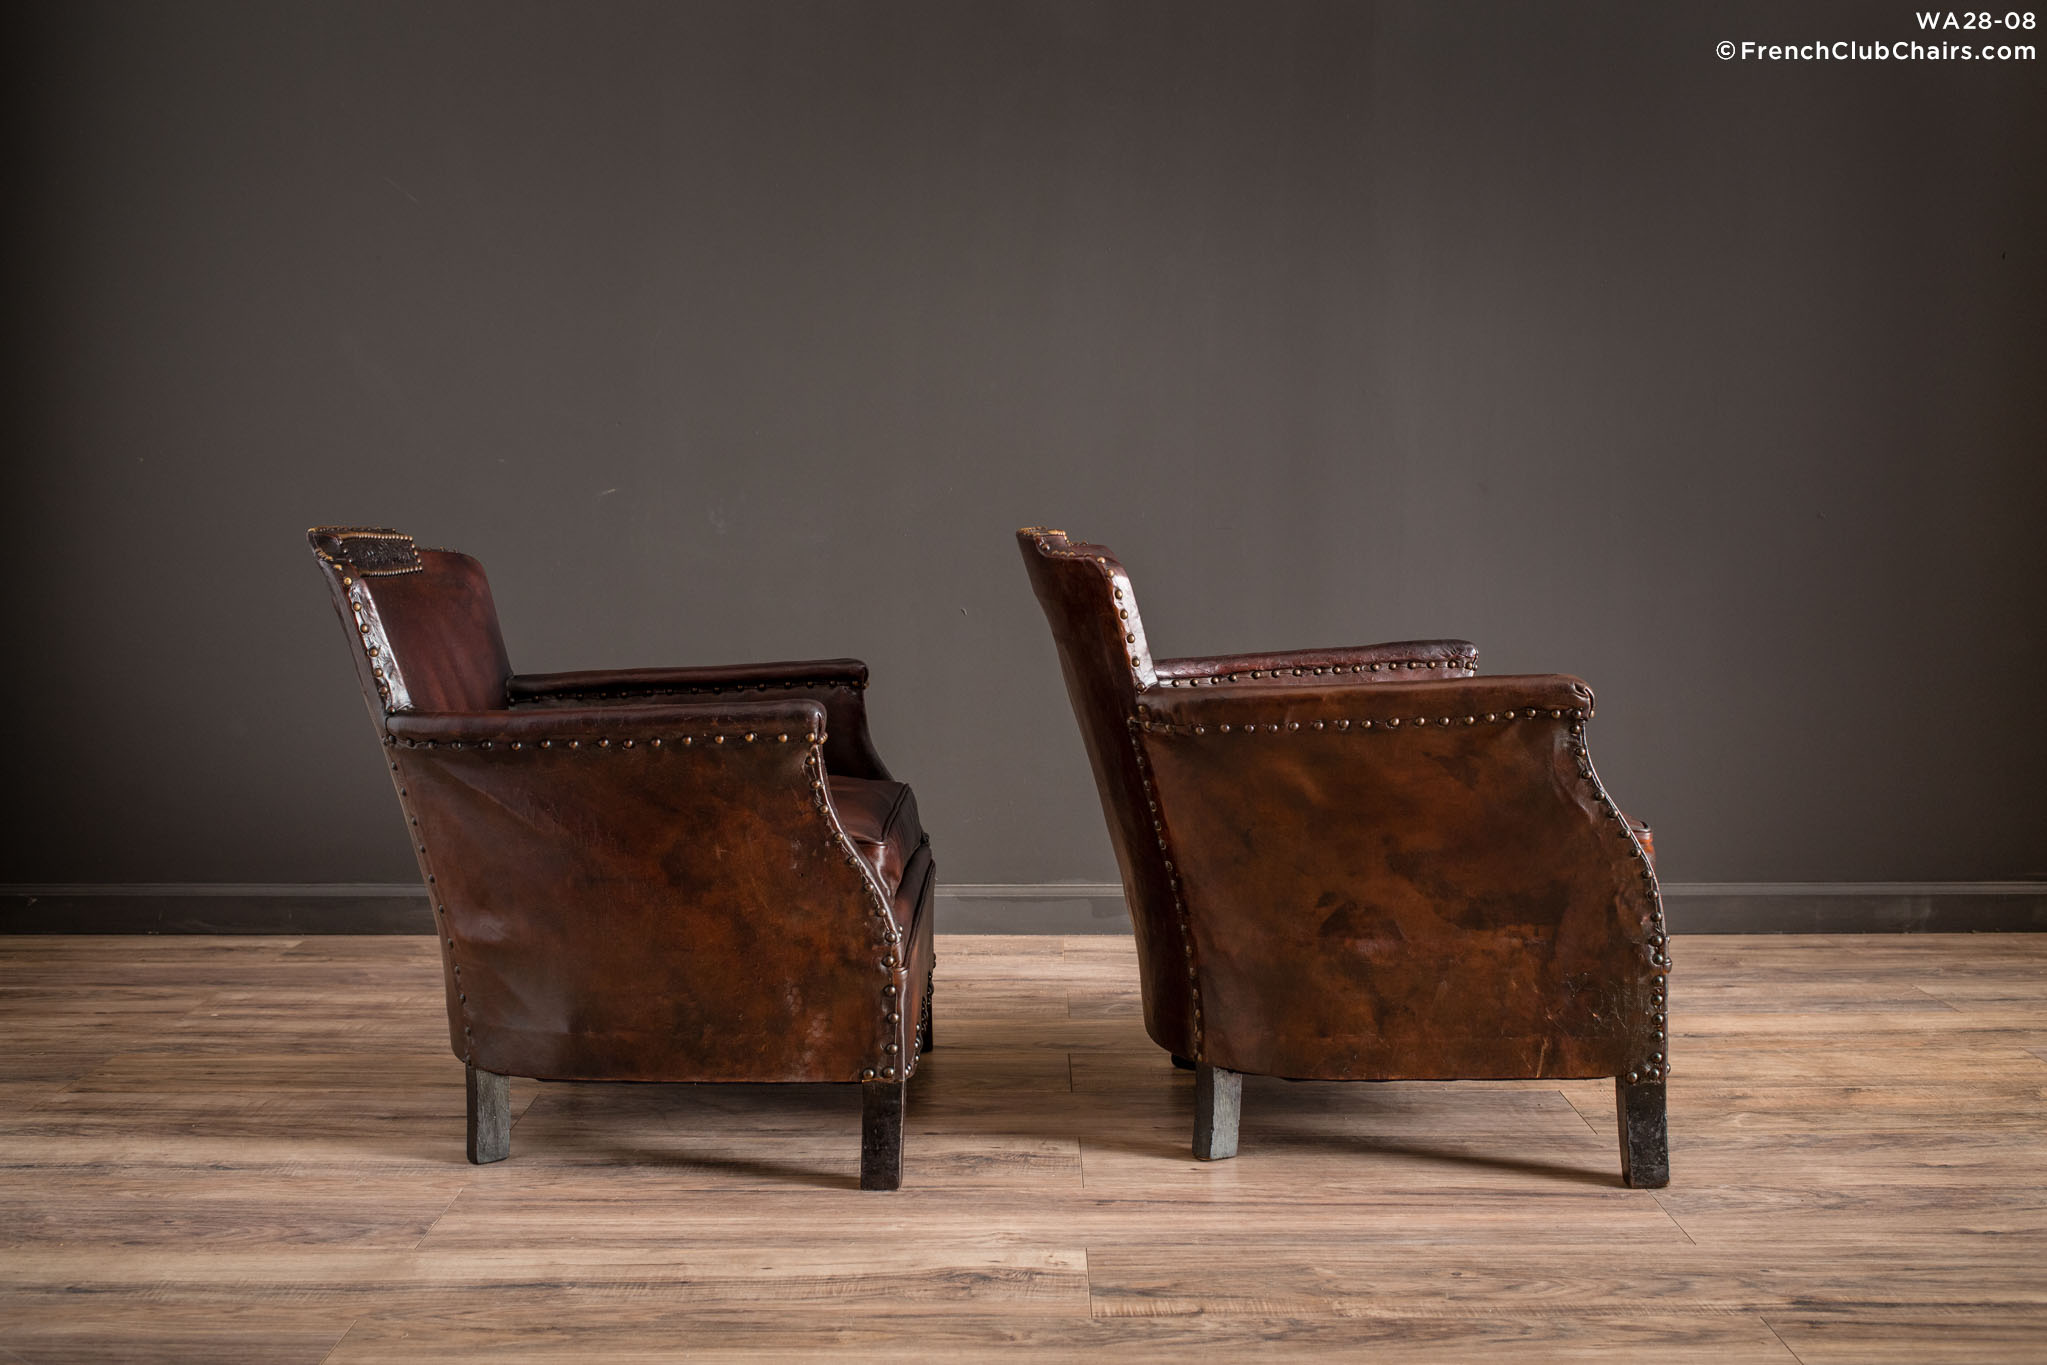 WA_28-08_Corbeilles_De_Vignoble_Pair_R_3RT1-williams-antiks-leather-french-club-chair-wa_fcccom